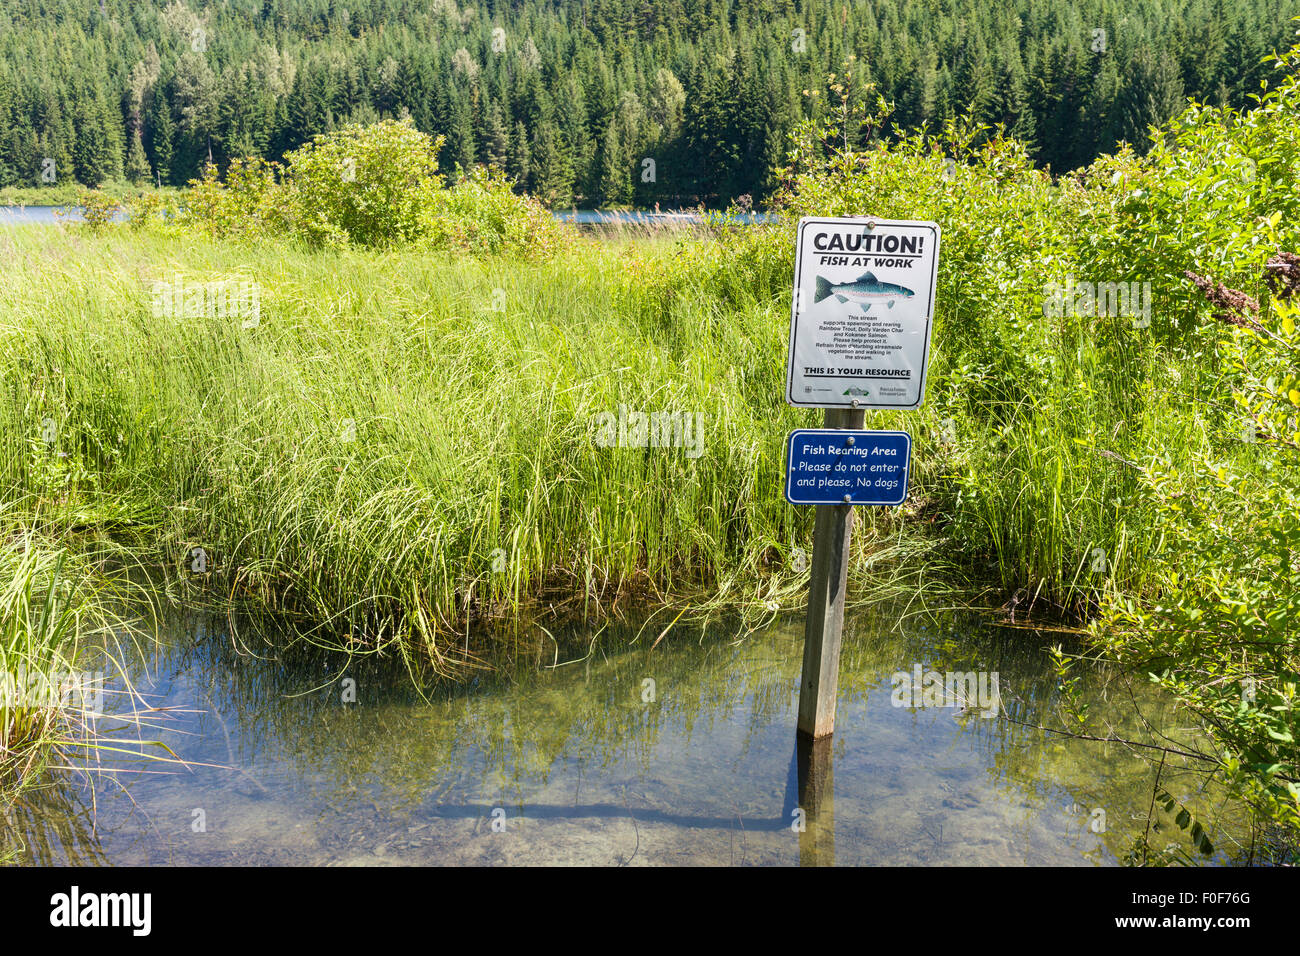 Fish rearing conservation sign near Lost Lake, Whistler, BC, Canada - Stock Image